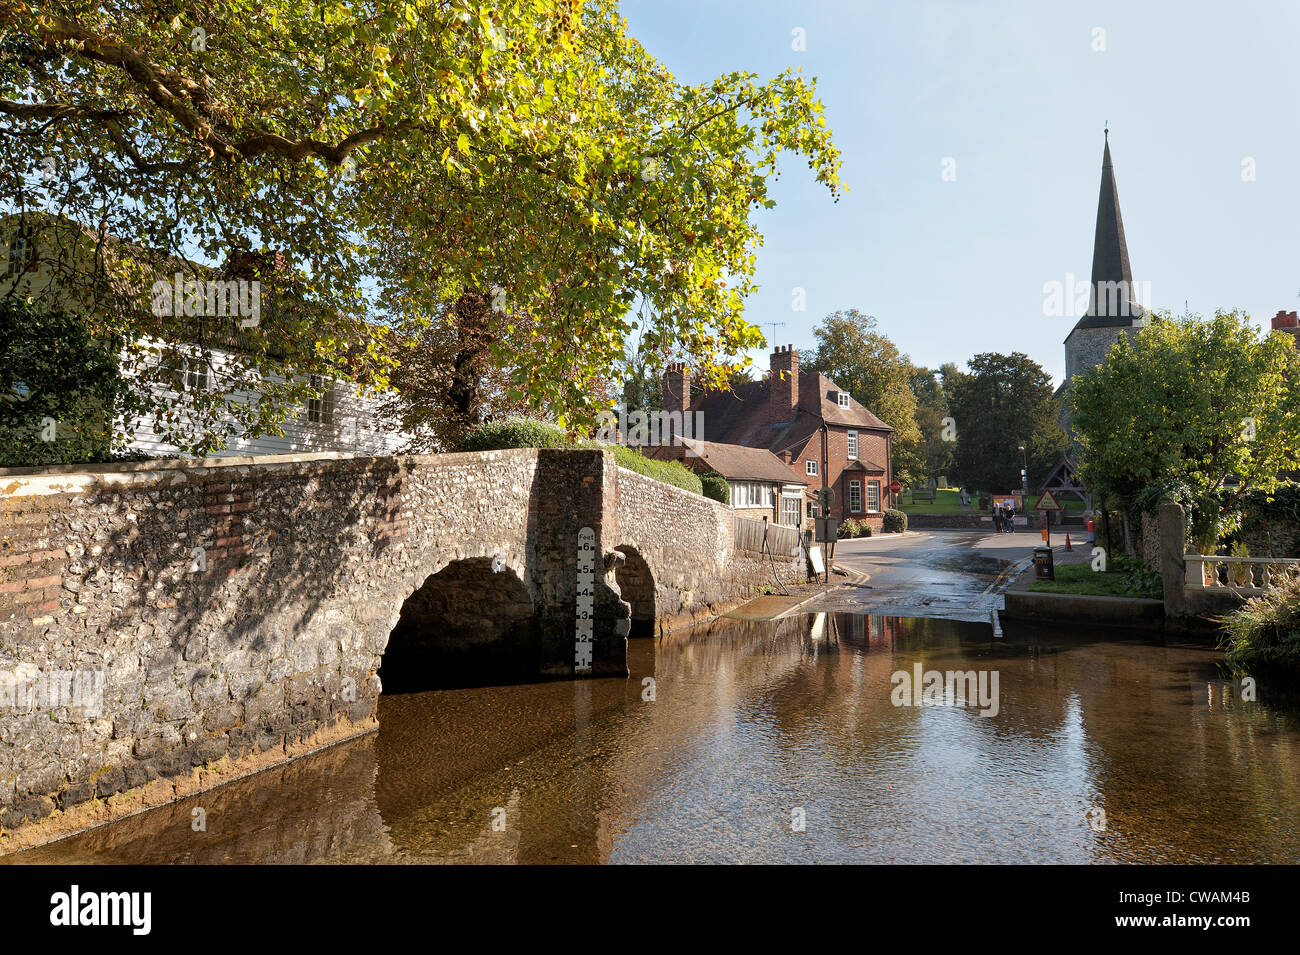 Eynsford ford humped backed pretty bride over river Darent - Stock Image